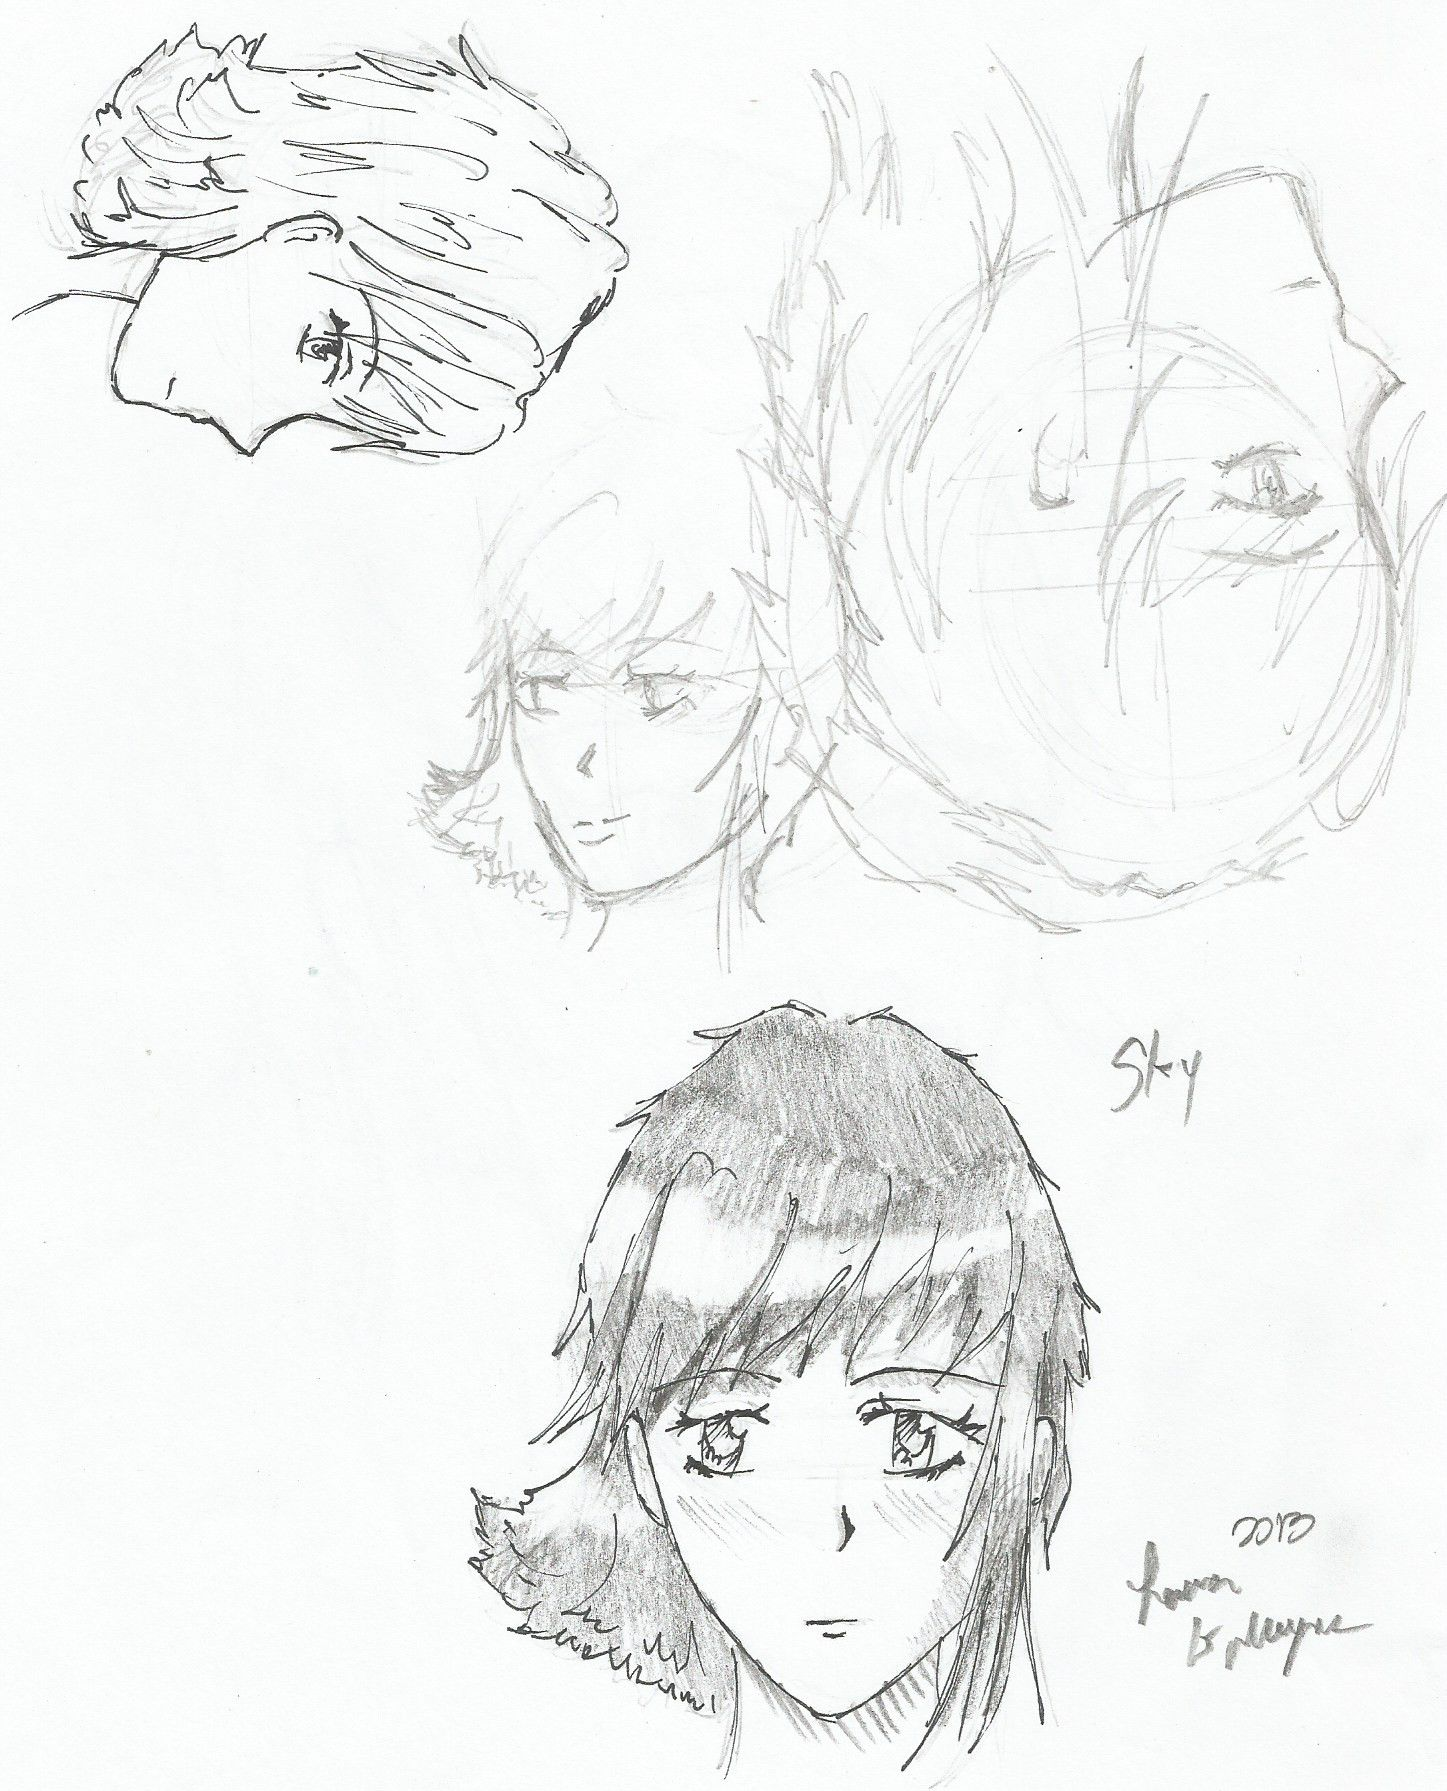 Some sketches of one of my manga characters